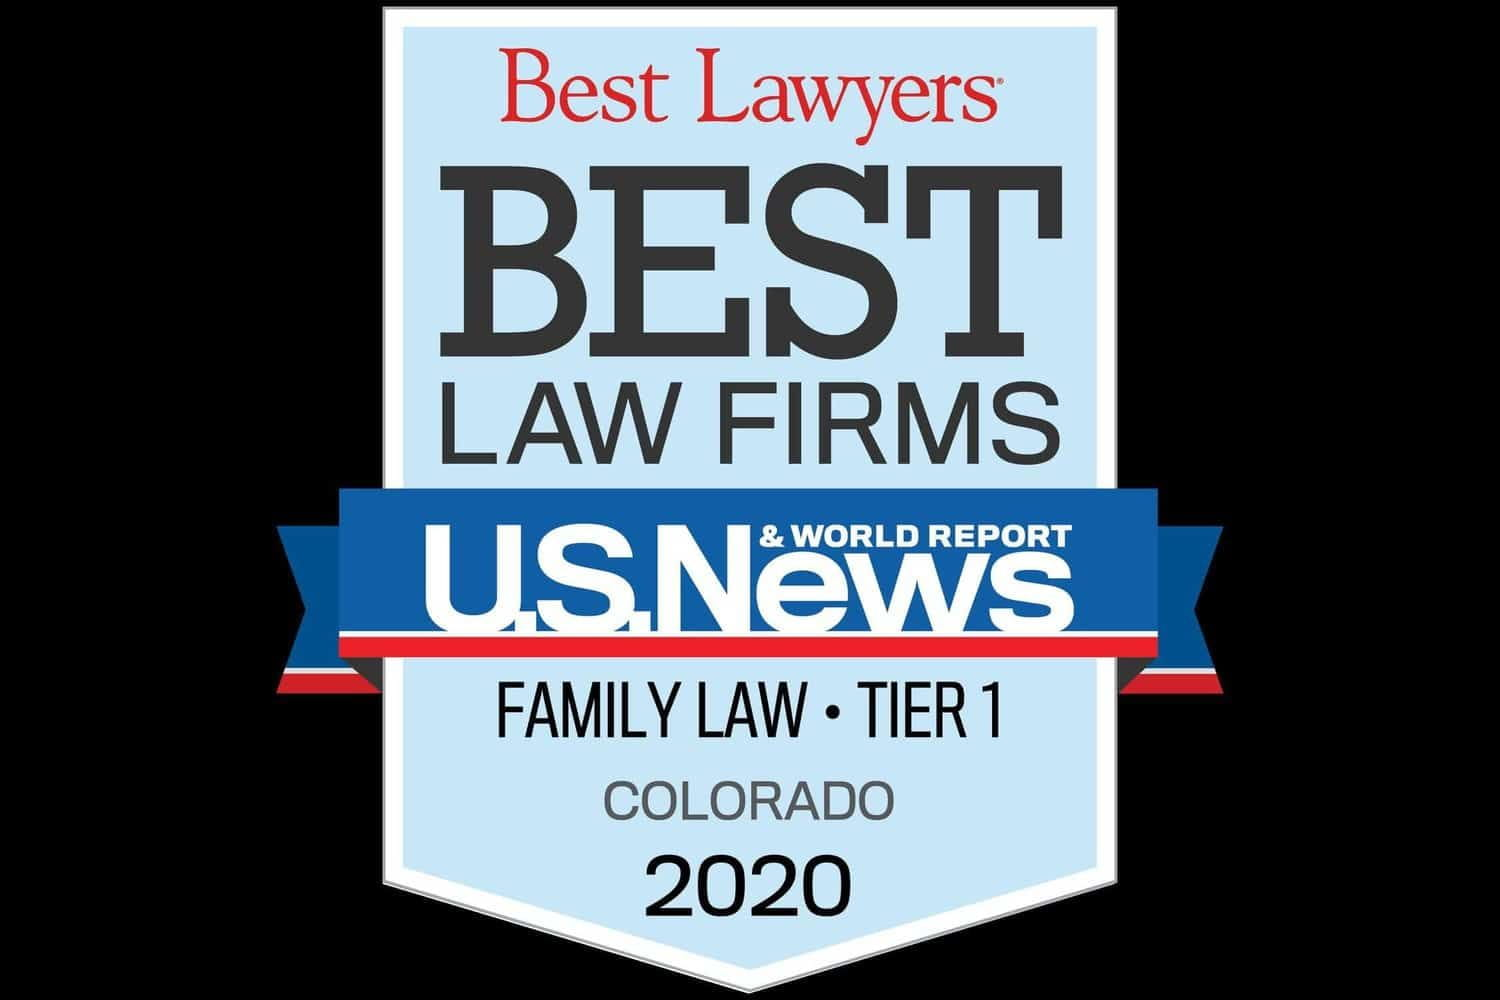 U.S. News and World Report Graham.Law as a Best Law Firm